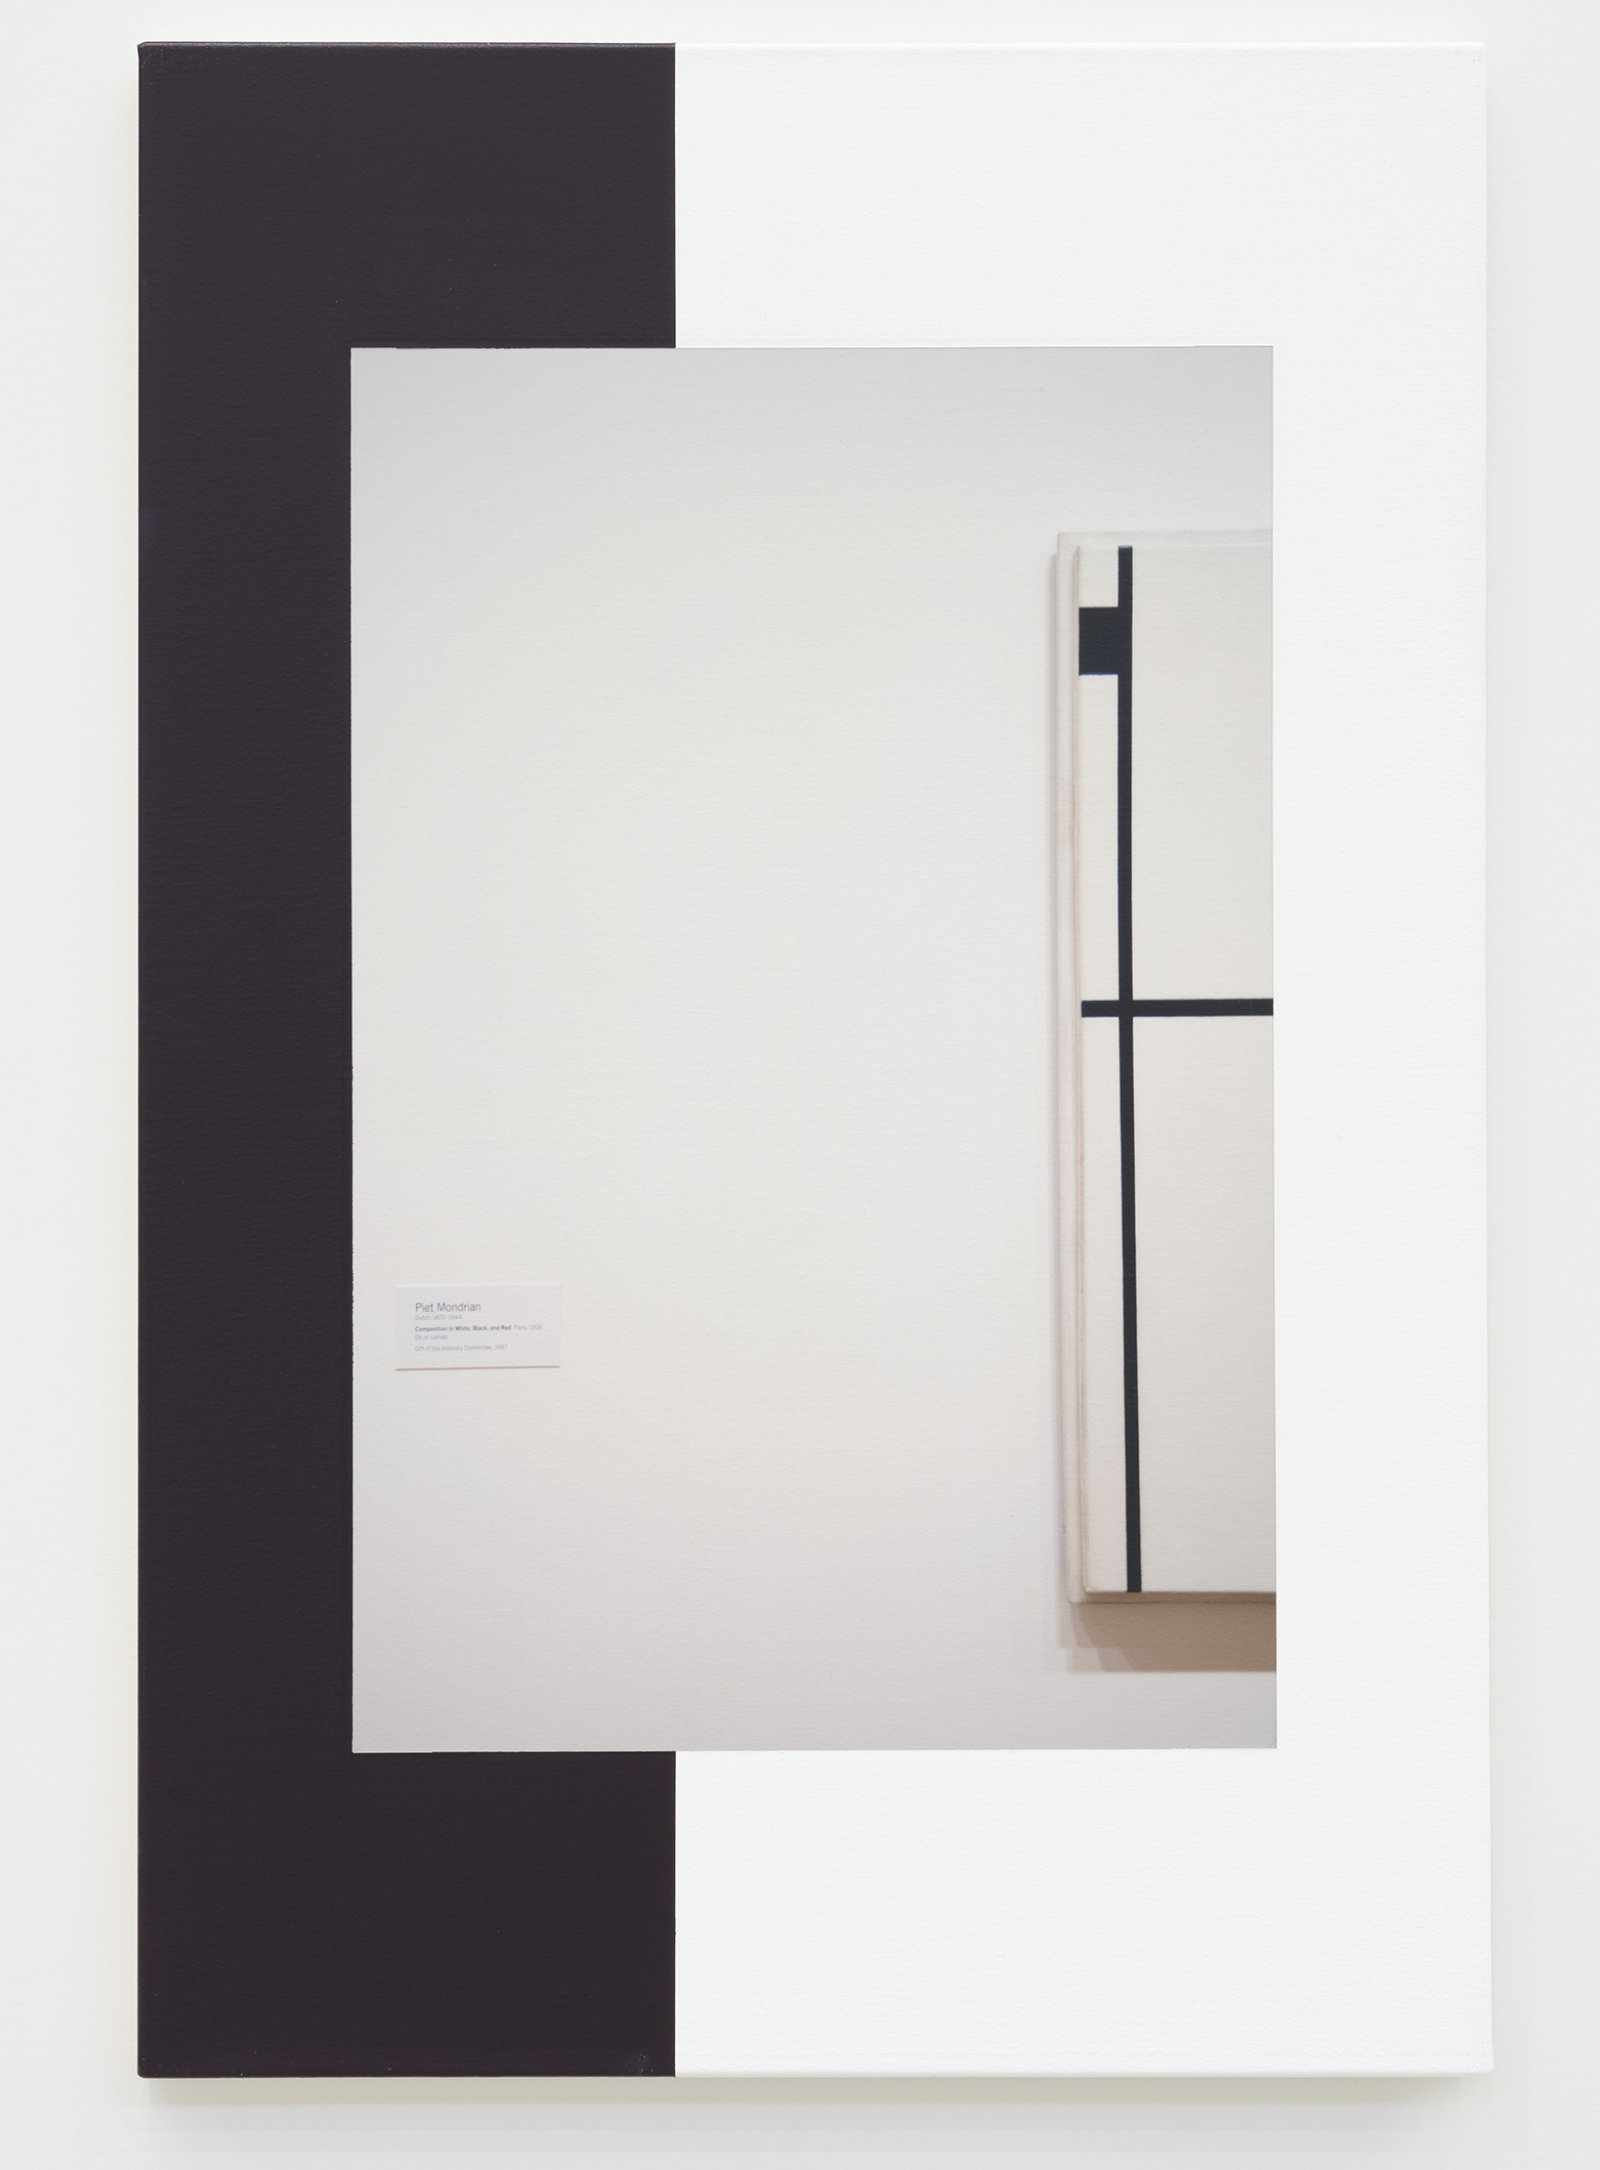 Ian Wallace, Abstract Composition (with Mondrian) IV, 2011, photolaminate with acrylic on canvas, 36 x 24 in. (91 x 61 cm) by Ian Wallace